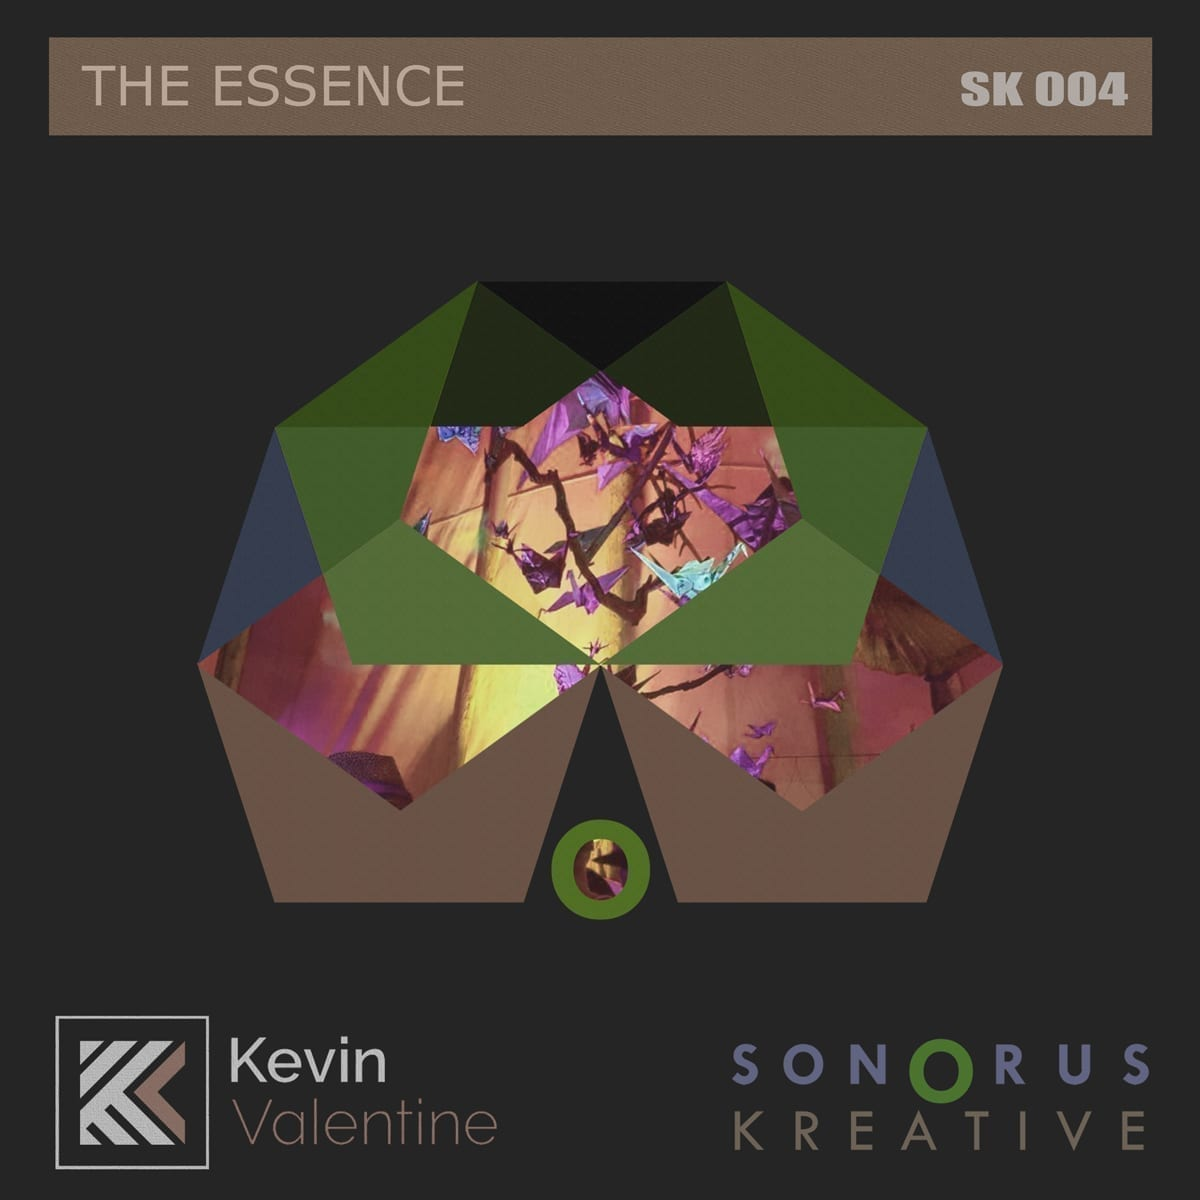 Kevin Valentine: The Essence